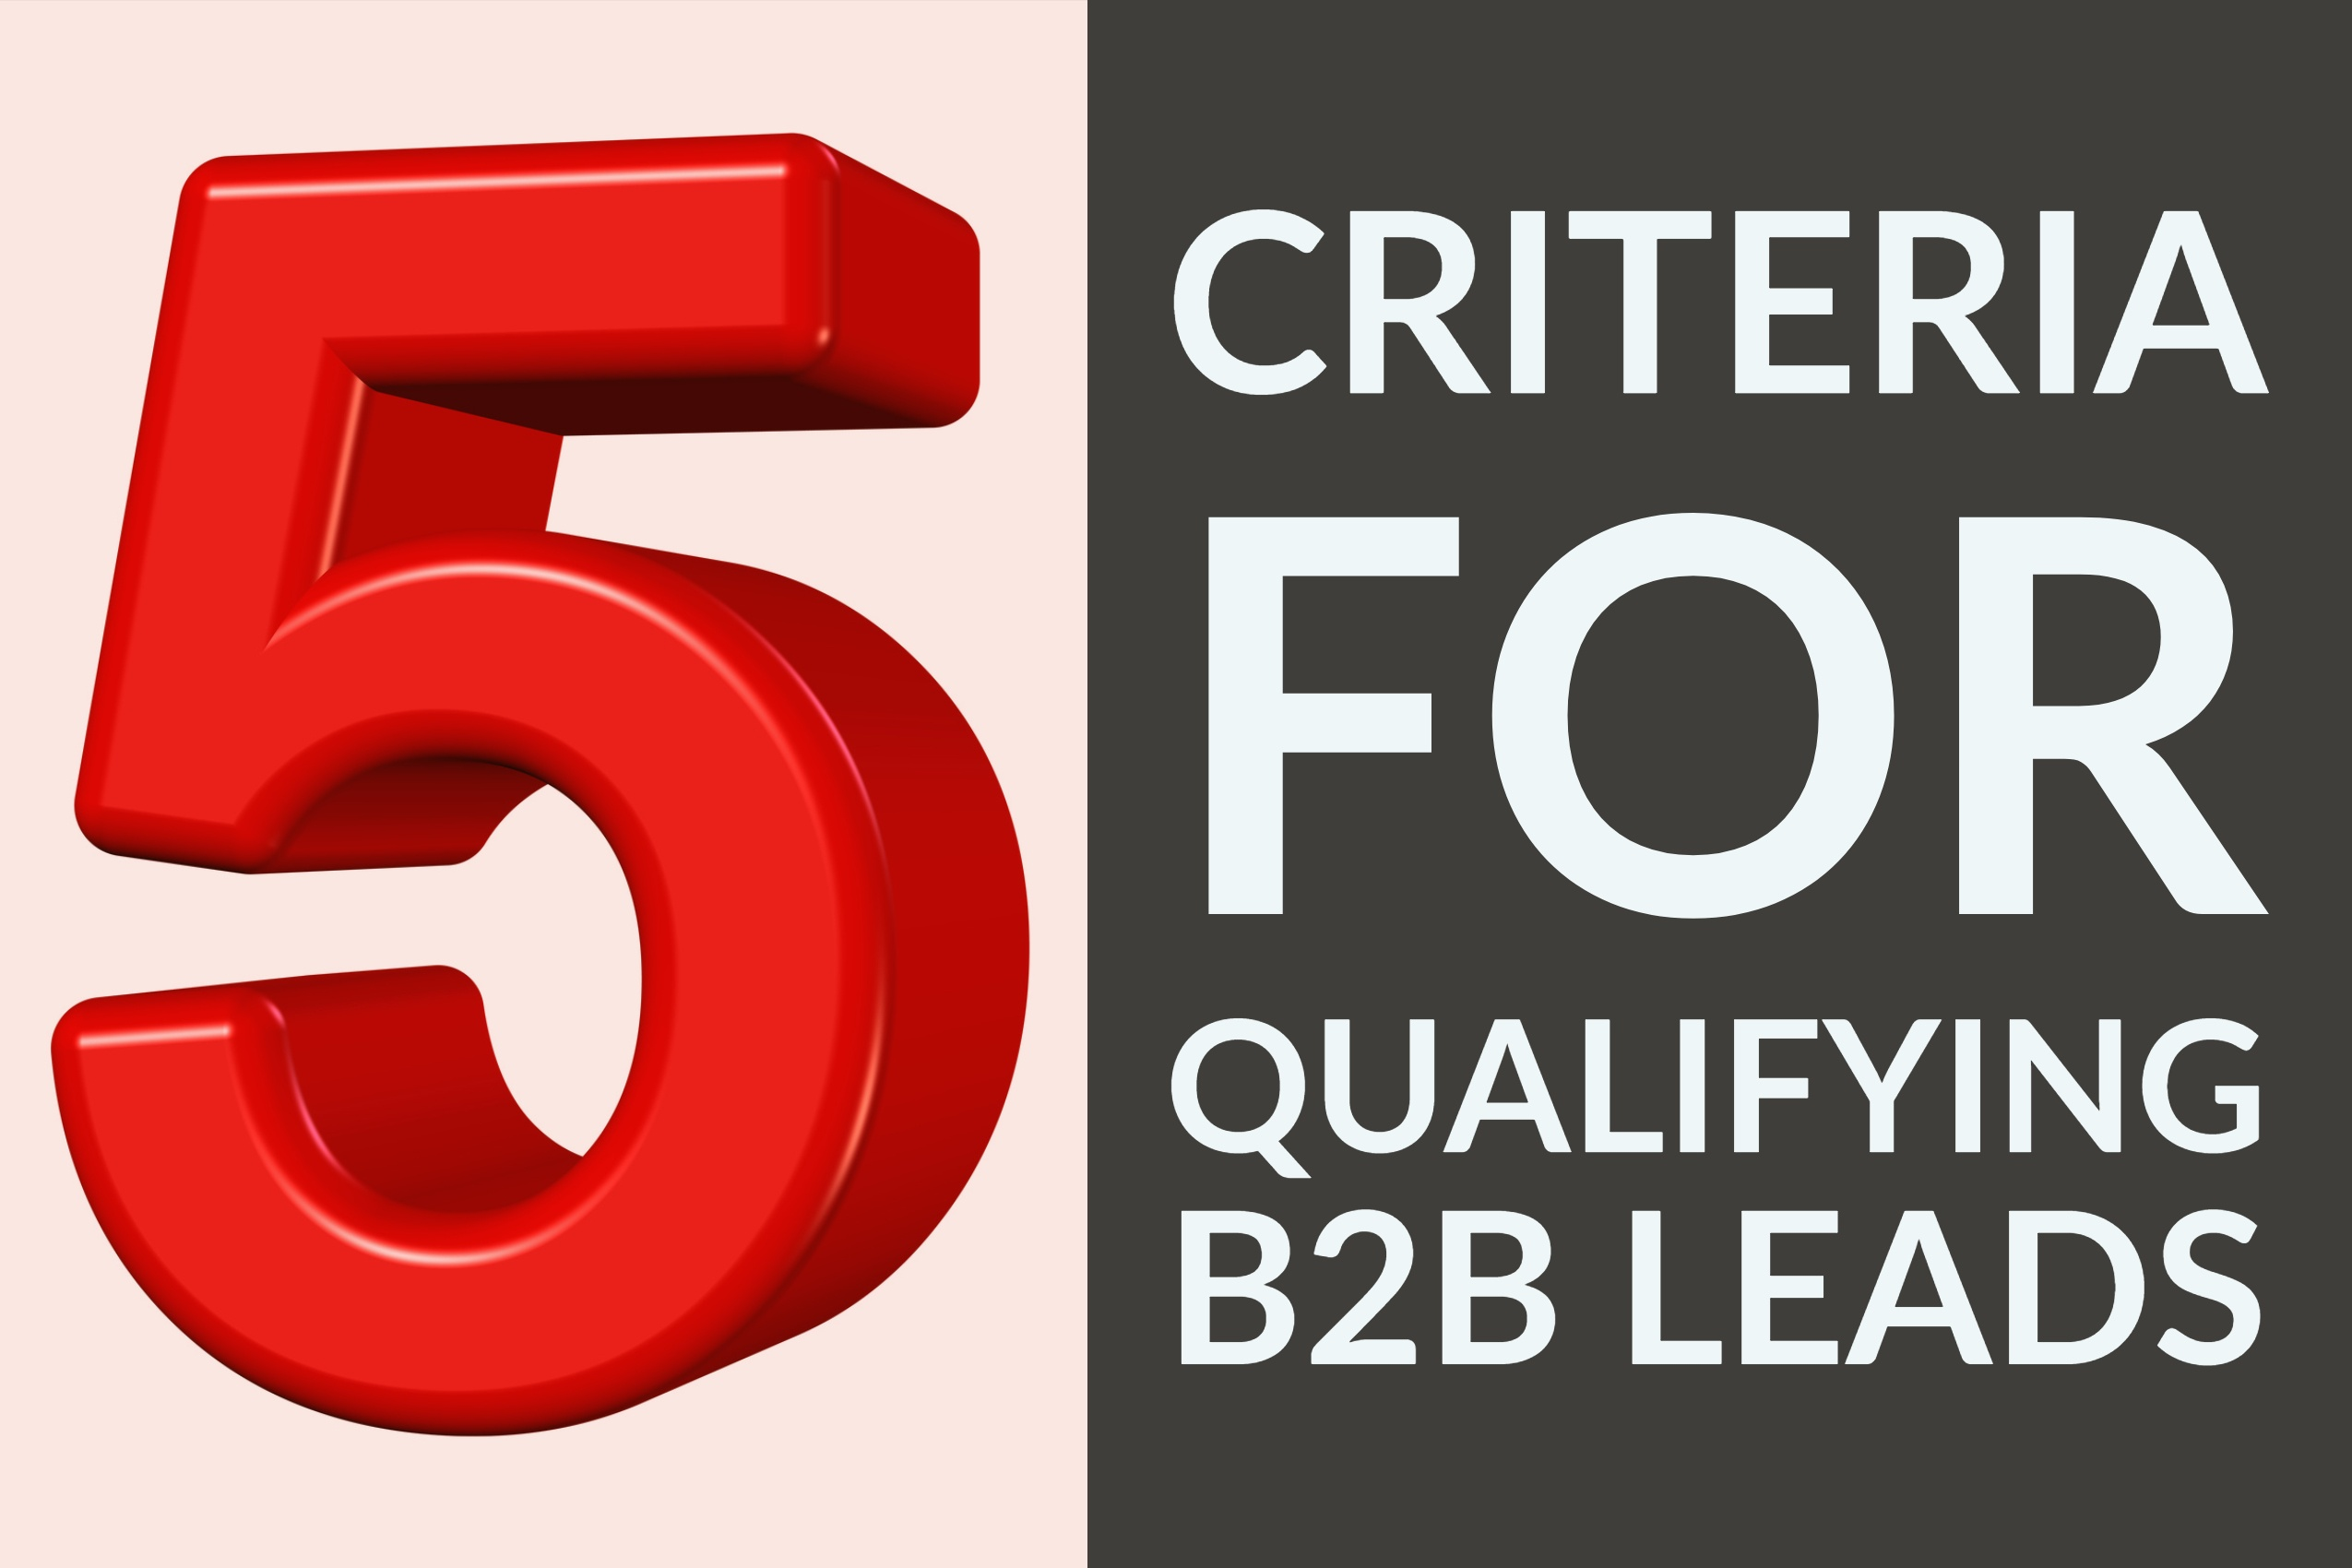 5 Criteria For Qualifying B2B Leads